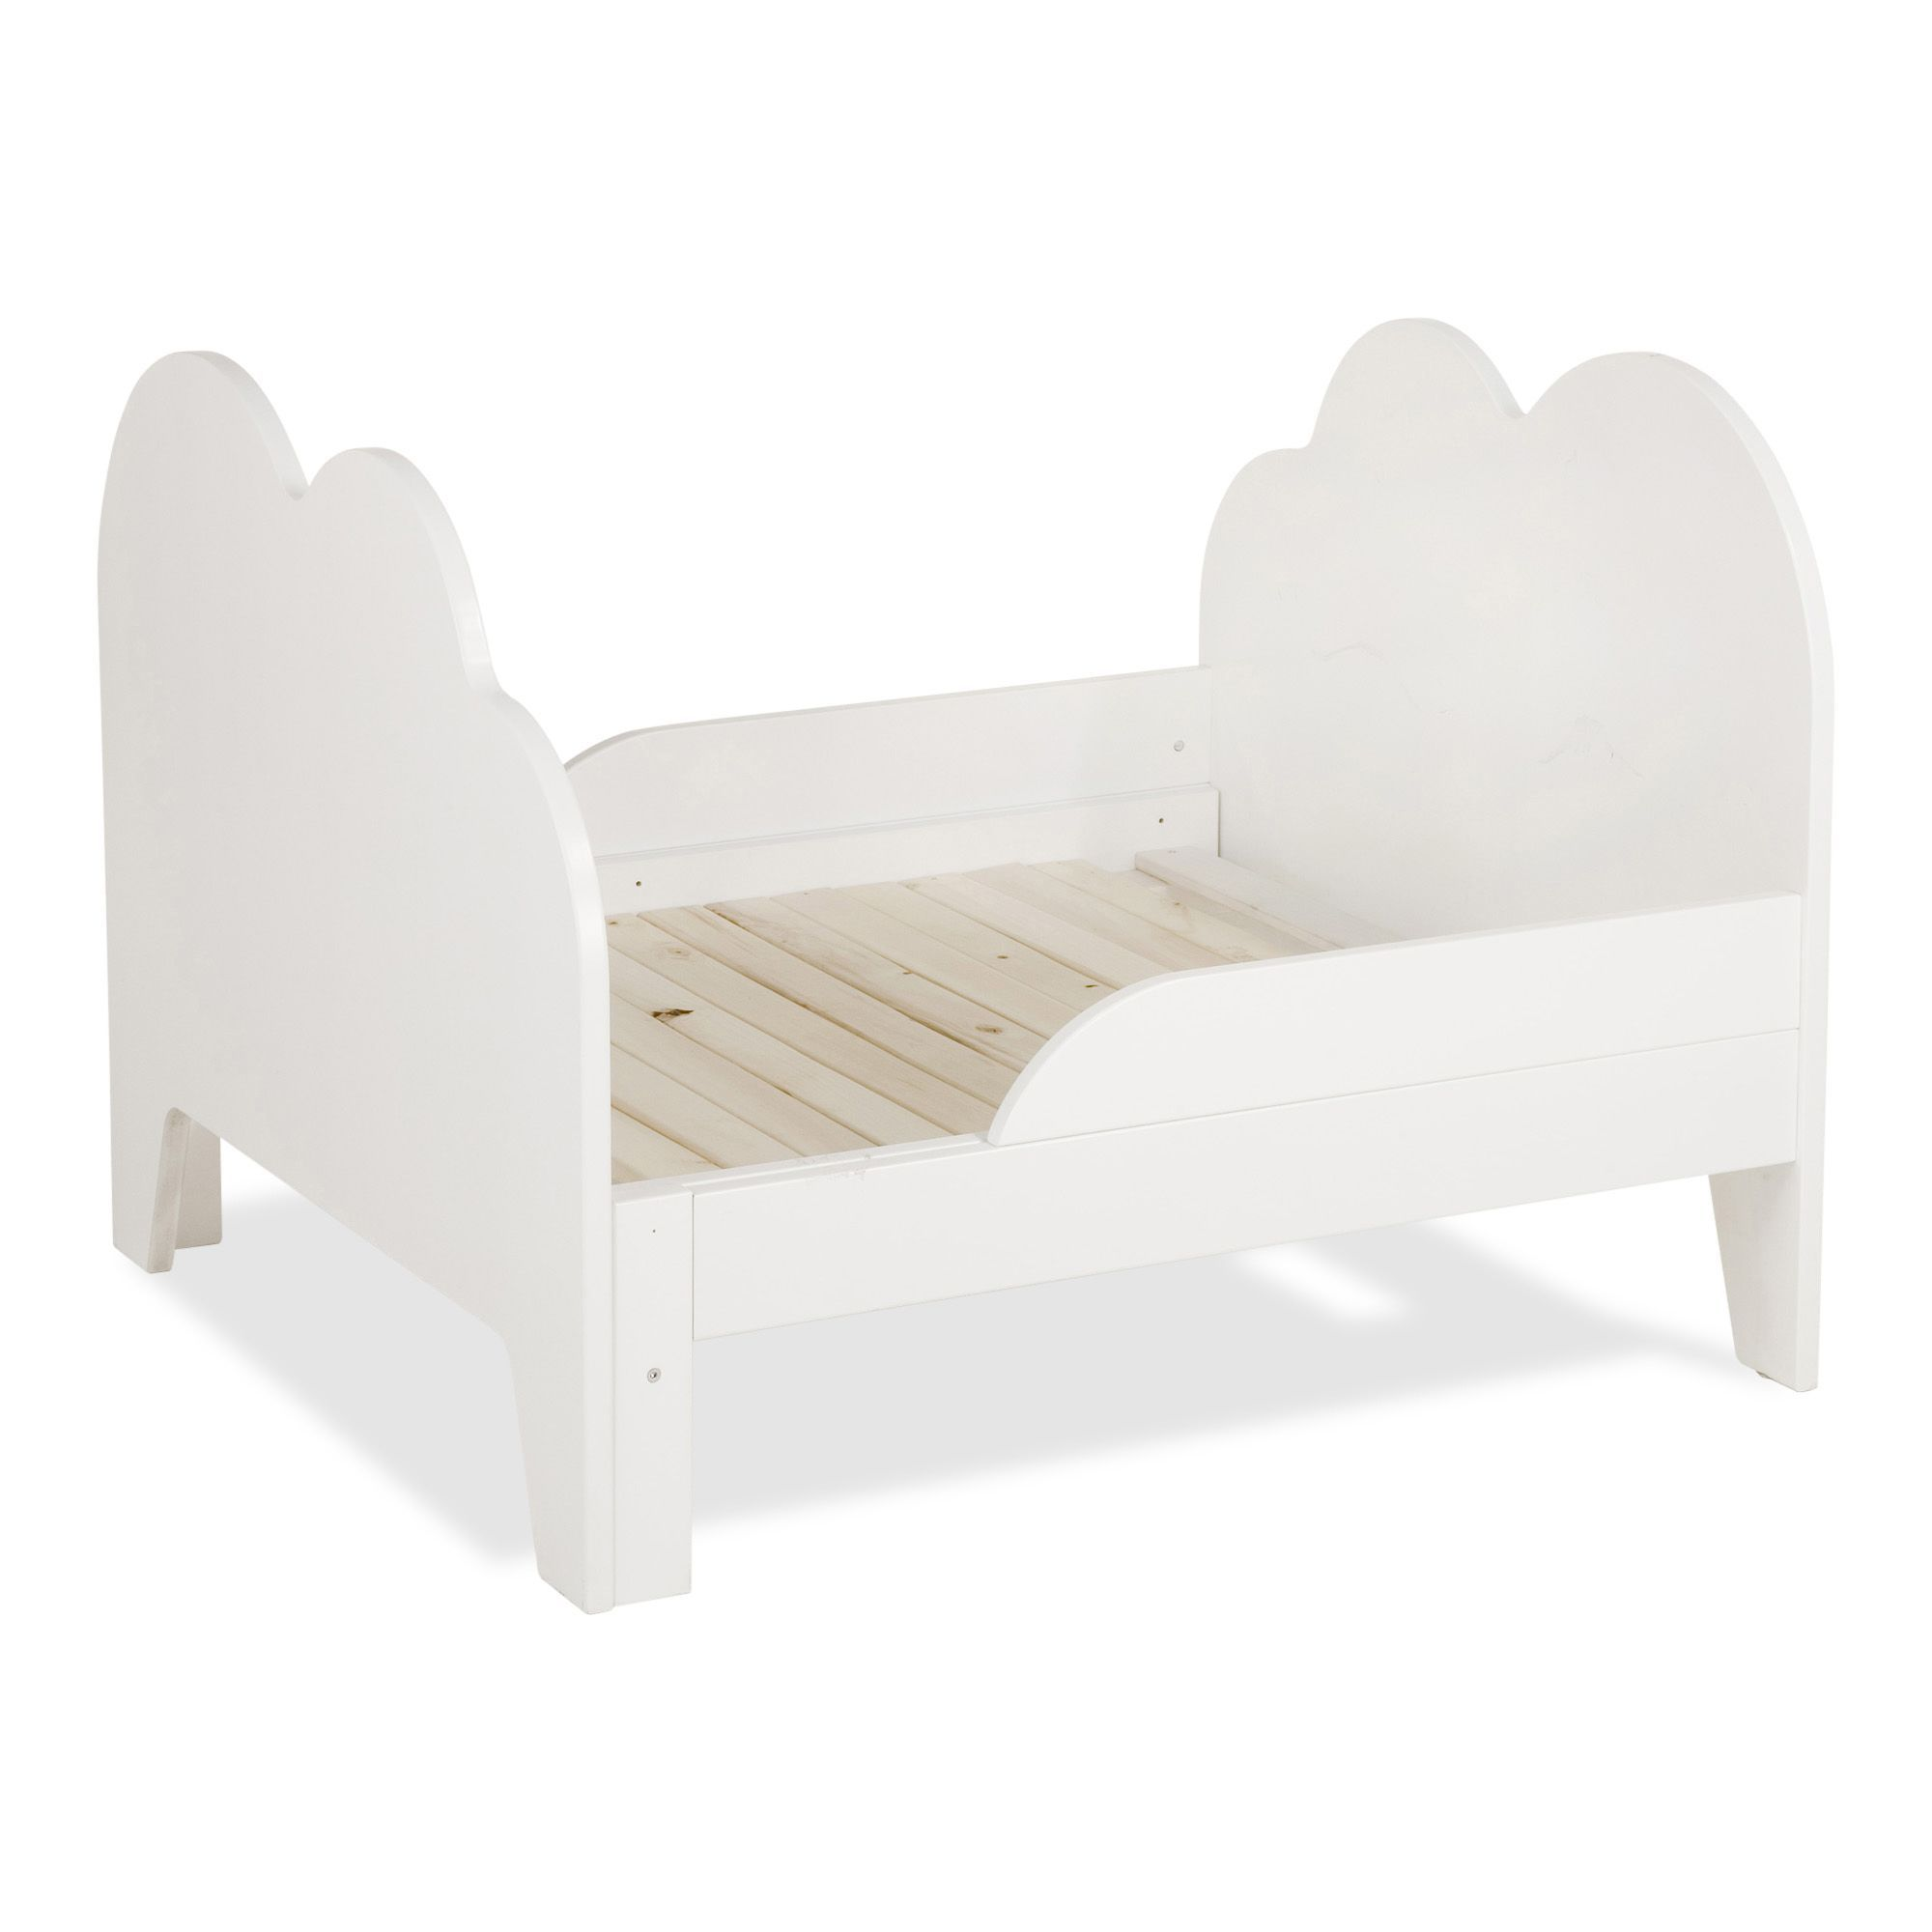 lit volutif blanc 3 positions avec d coupes forme nuage pour enfant nuage lits enfants. Black Bedroom Furniture Sets. Home Design Ideas